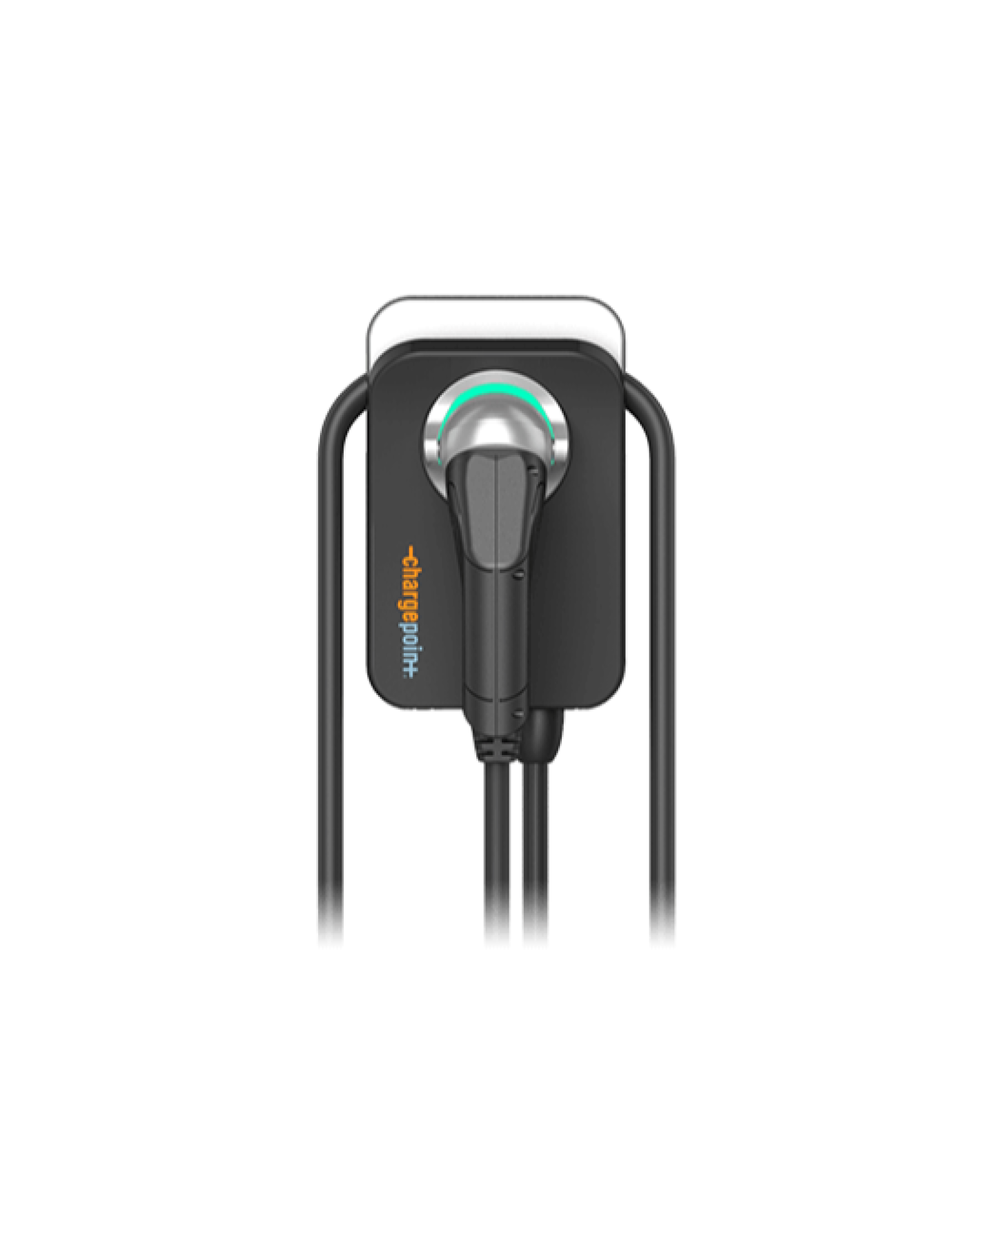 In your home - Arrive home and plug in so you are ready for your next journey.Benefit from cheaper charging electricity while you sleep and make your daily routine more convenient.